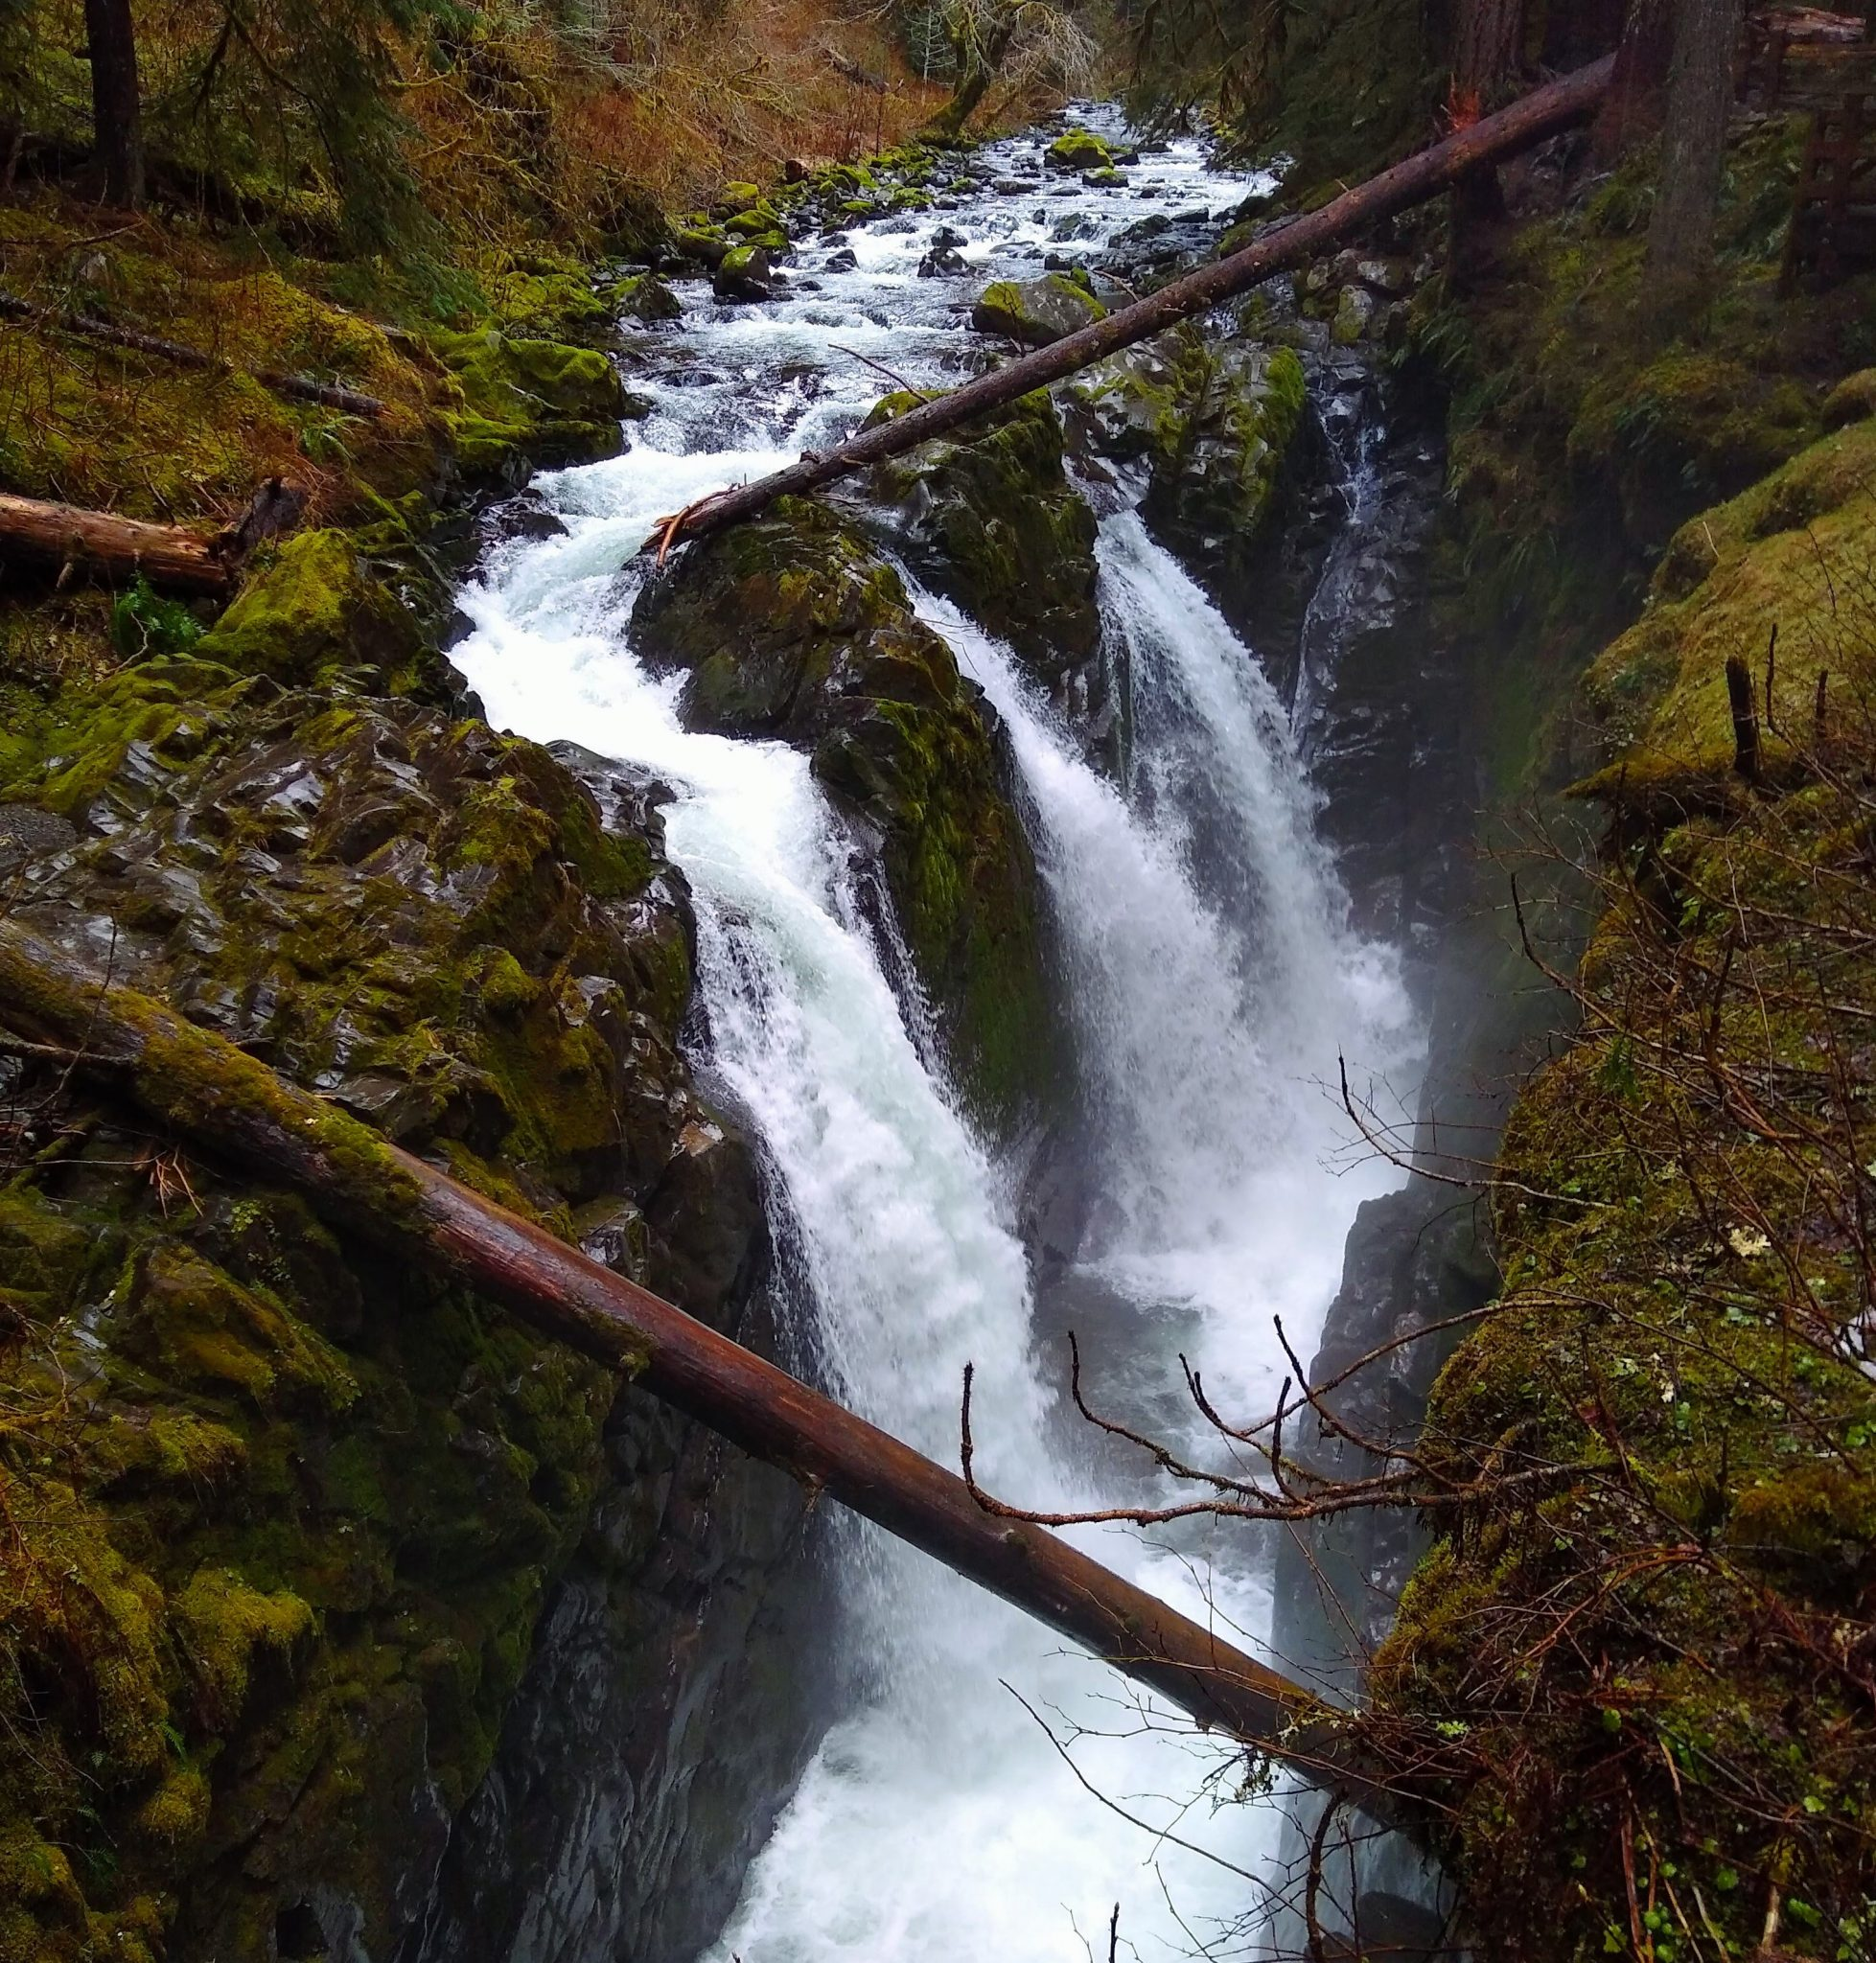 A waterfall with three distinct tiers of waterfall in Olympic National Park. The waterfall is going into a narrow canyon between moss covered rocks. Several large logs lay across the narrow canyon